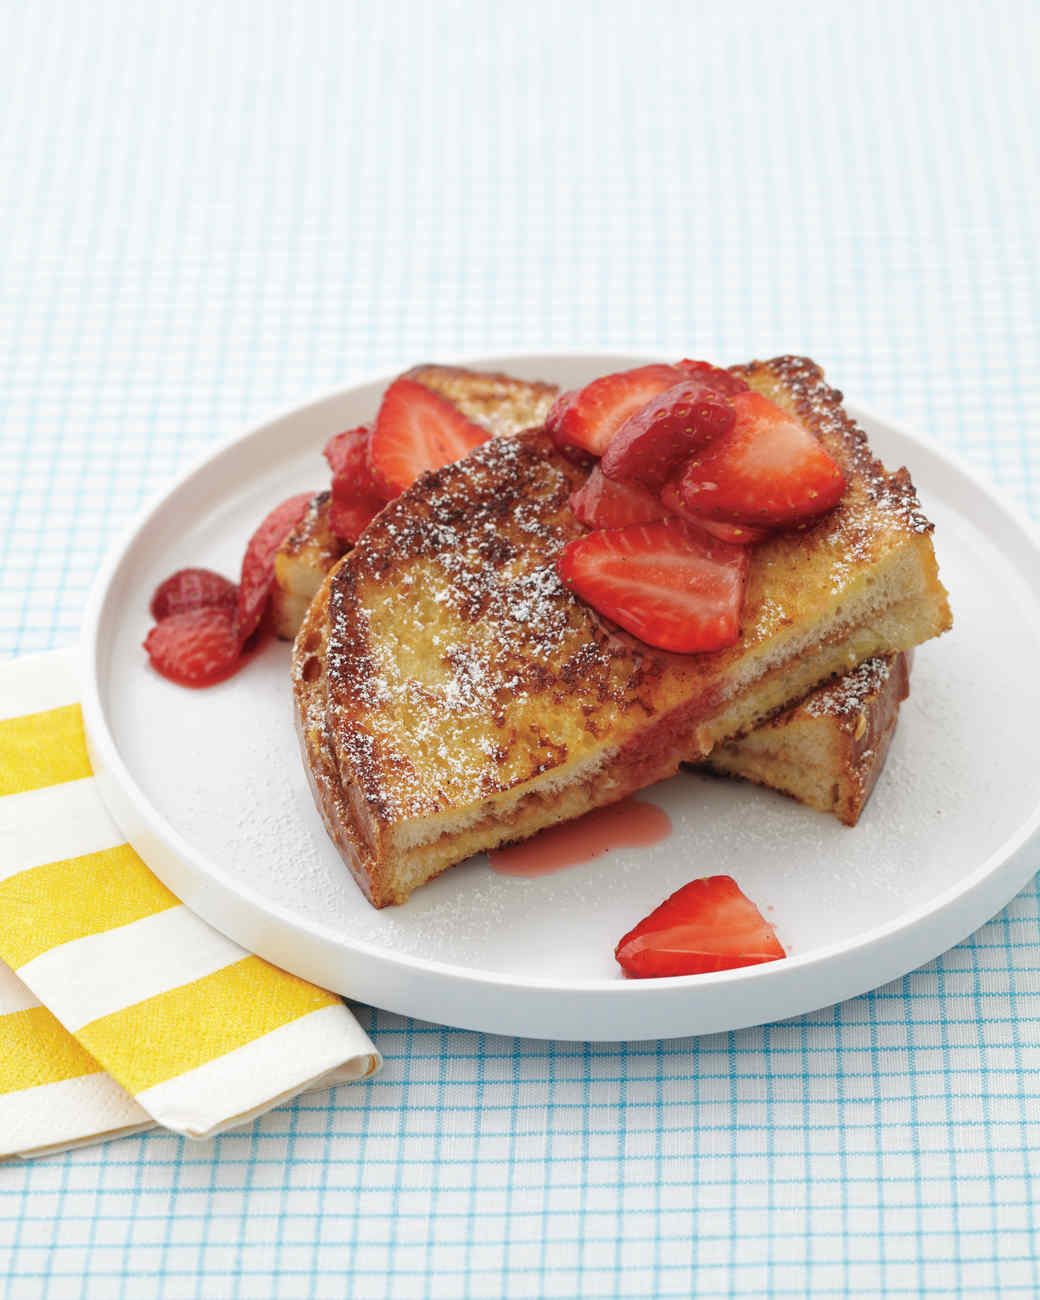 peanut-butter-french-toast-2-med108462.jpg